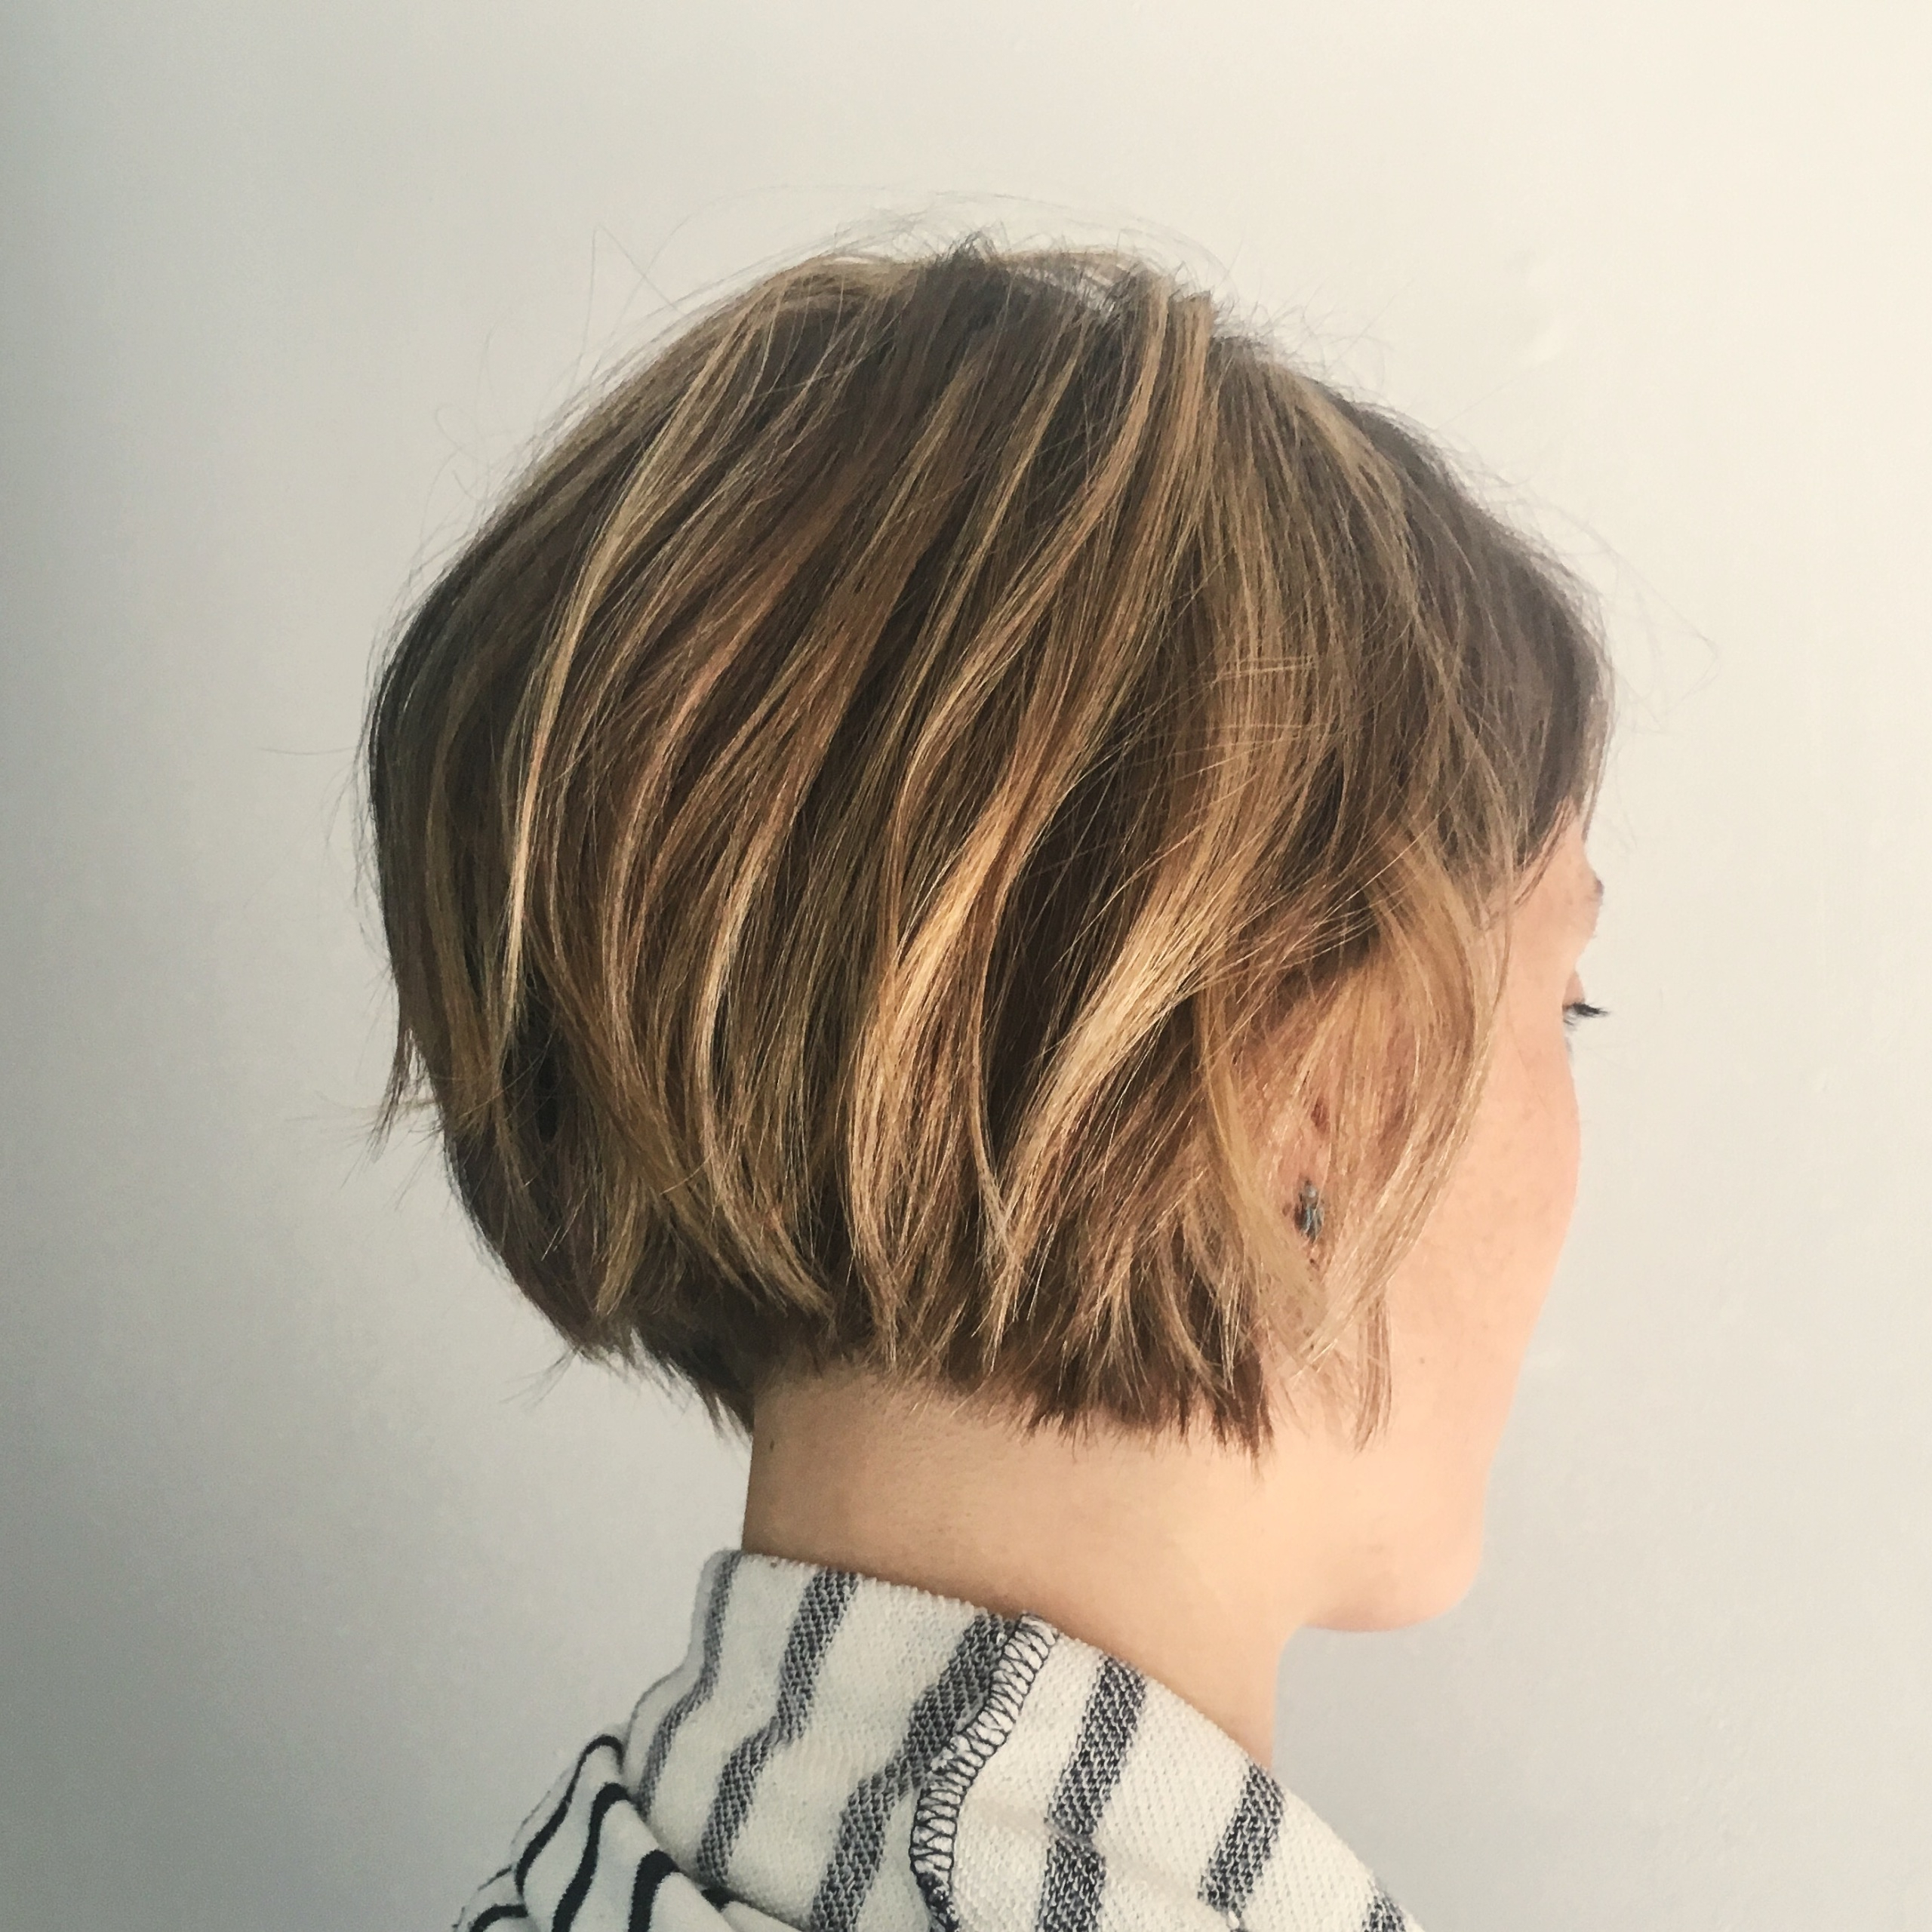 Advanced Razored Bob, November 4th, 10a 3p In Razored Brown Bob Hairstyles (View 14 of 20)